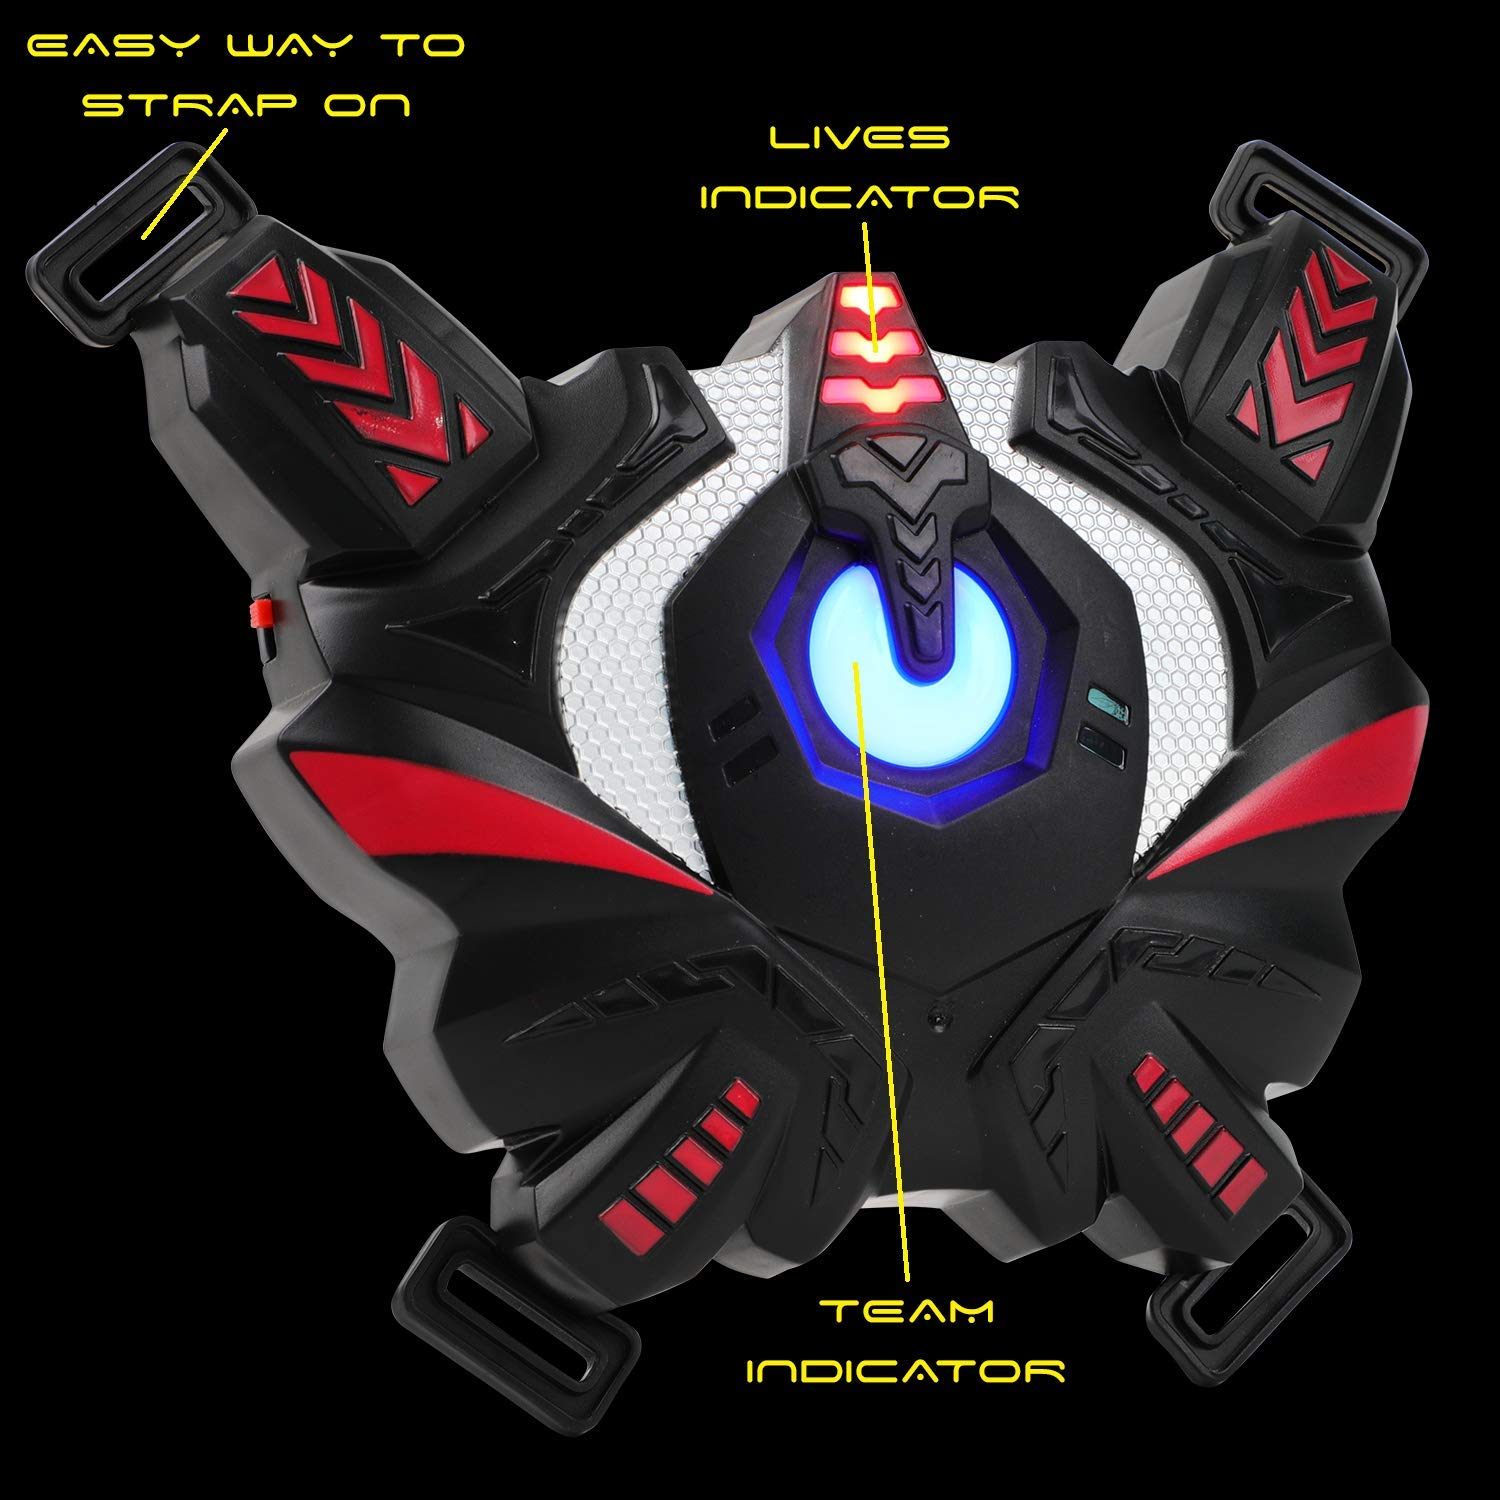 Falconz 4 Player Laser Tag Set with 4 Guns and Vests - Great Indoor or Outdoor Fun for Both Kids and Adults by Falconz (Image #3)